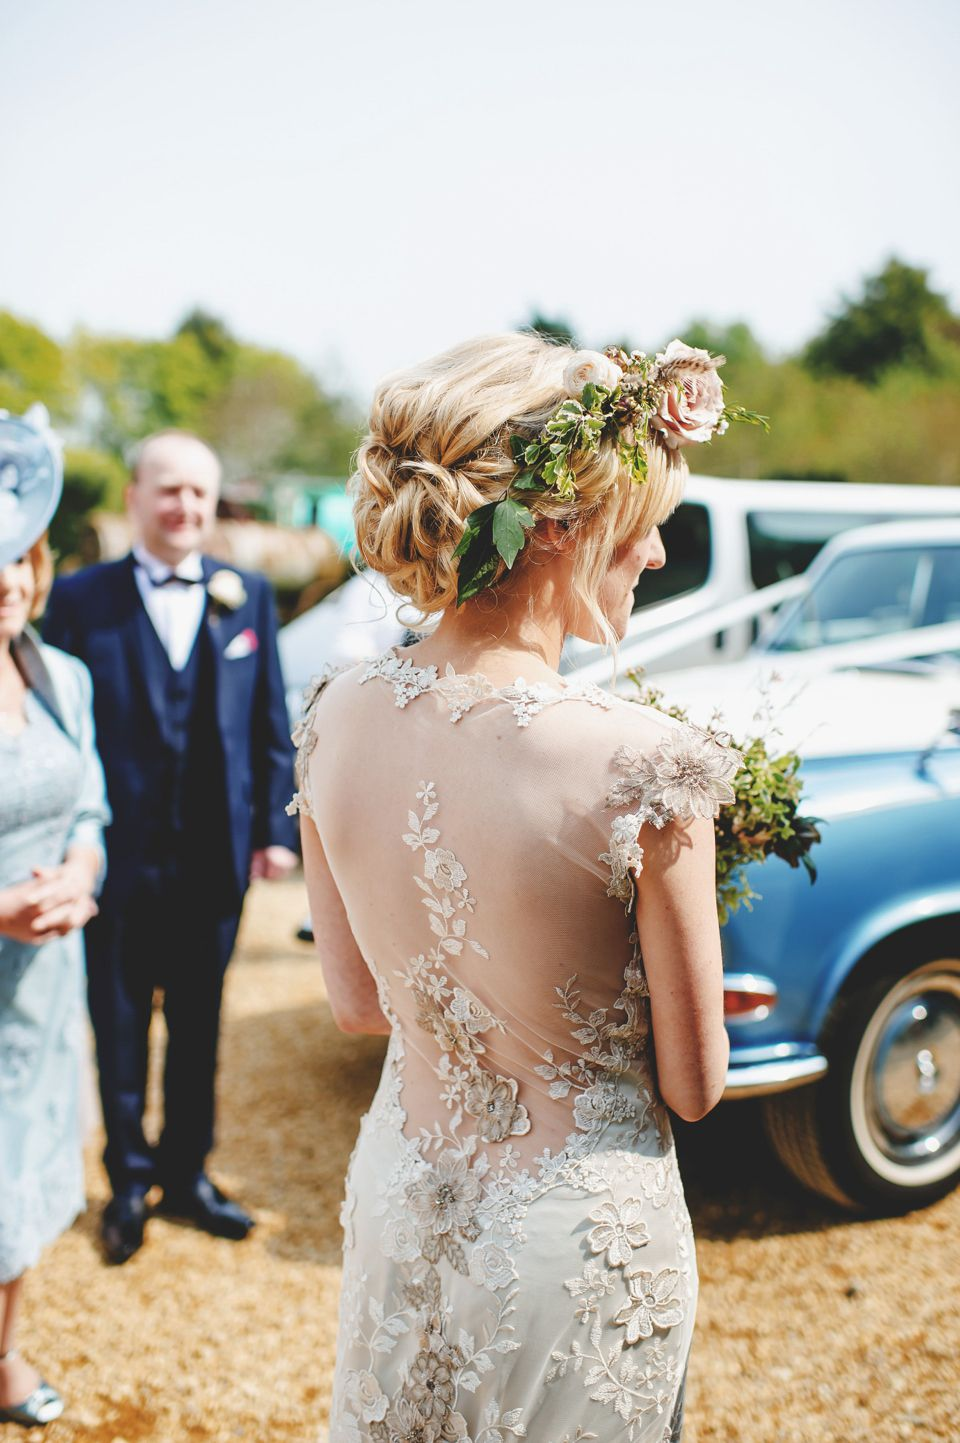 Claire Pettibone And Flowers In Her Hair A Spectacular Outdoor